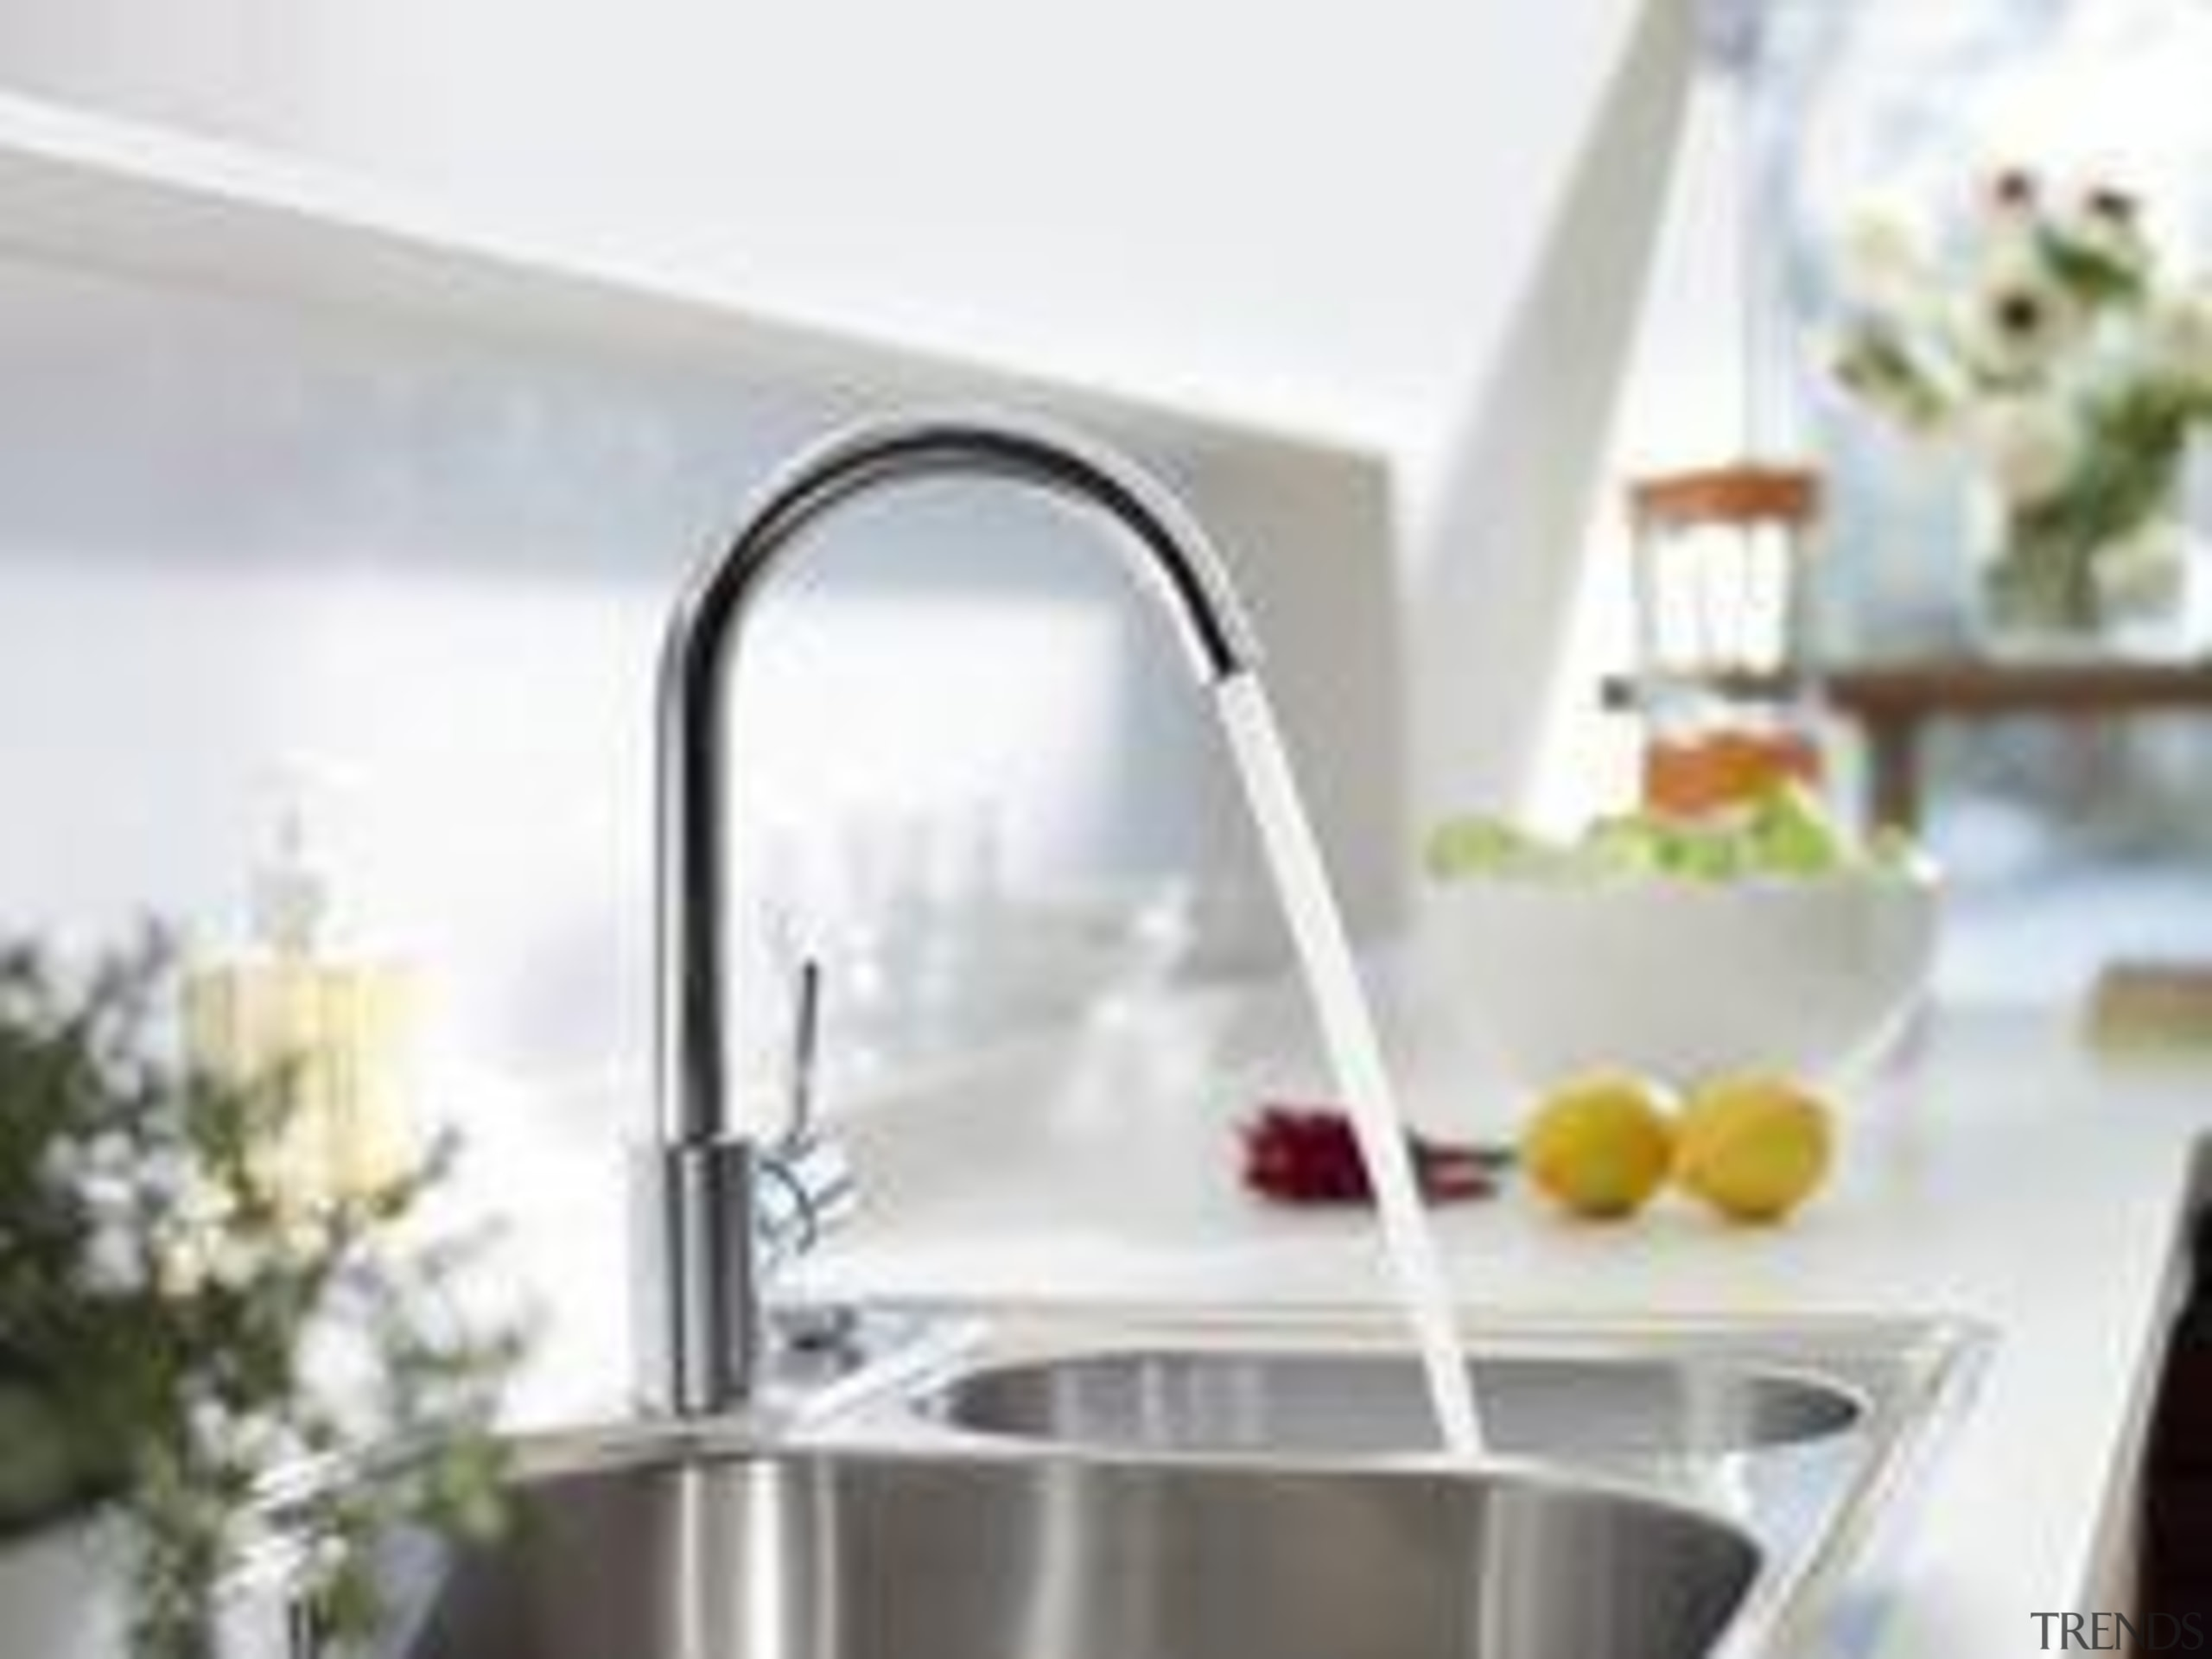 Hansgrohe Talis S2 Kitchen Mixer - My Dream interior design, kitchen, plumbing fixture, product design, sink, small appliance, tap, white